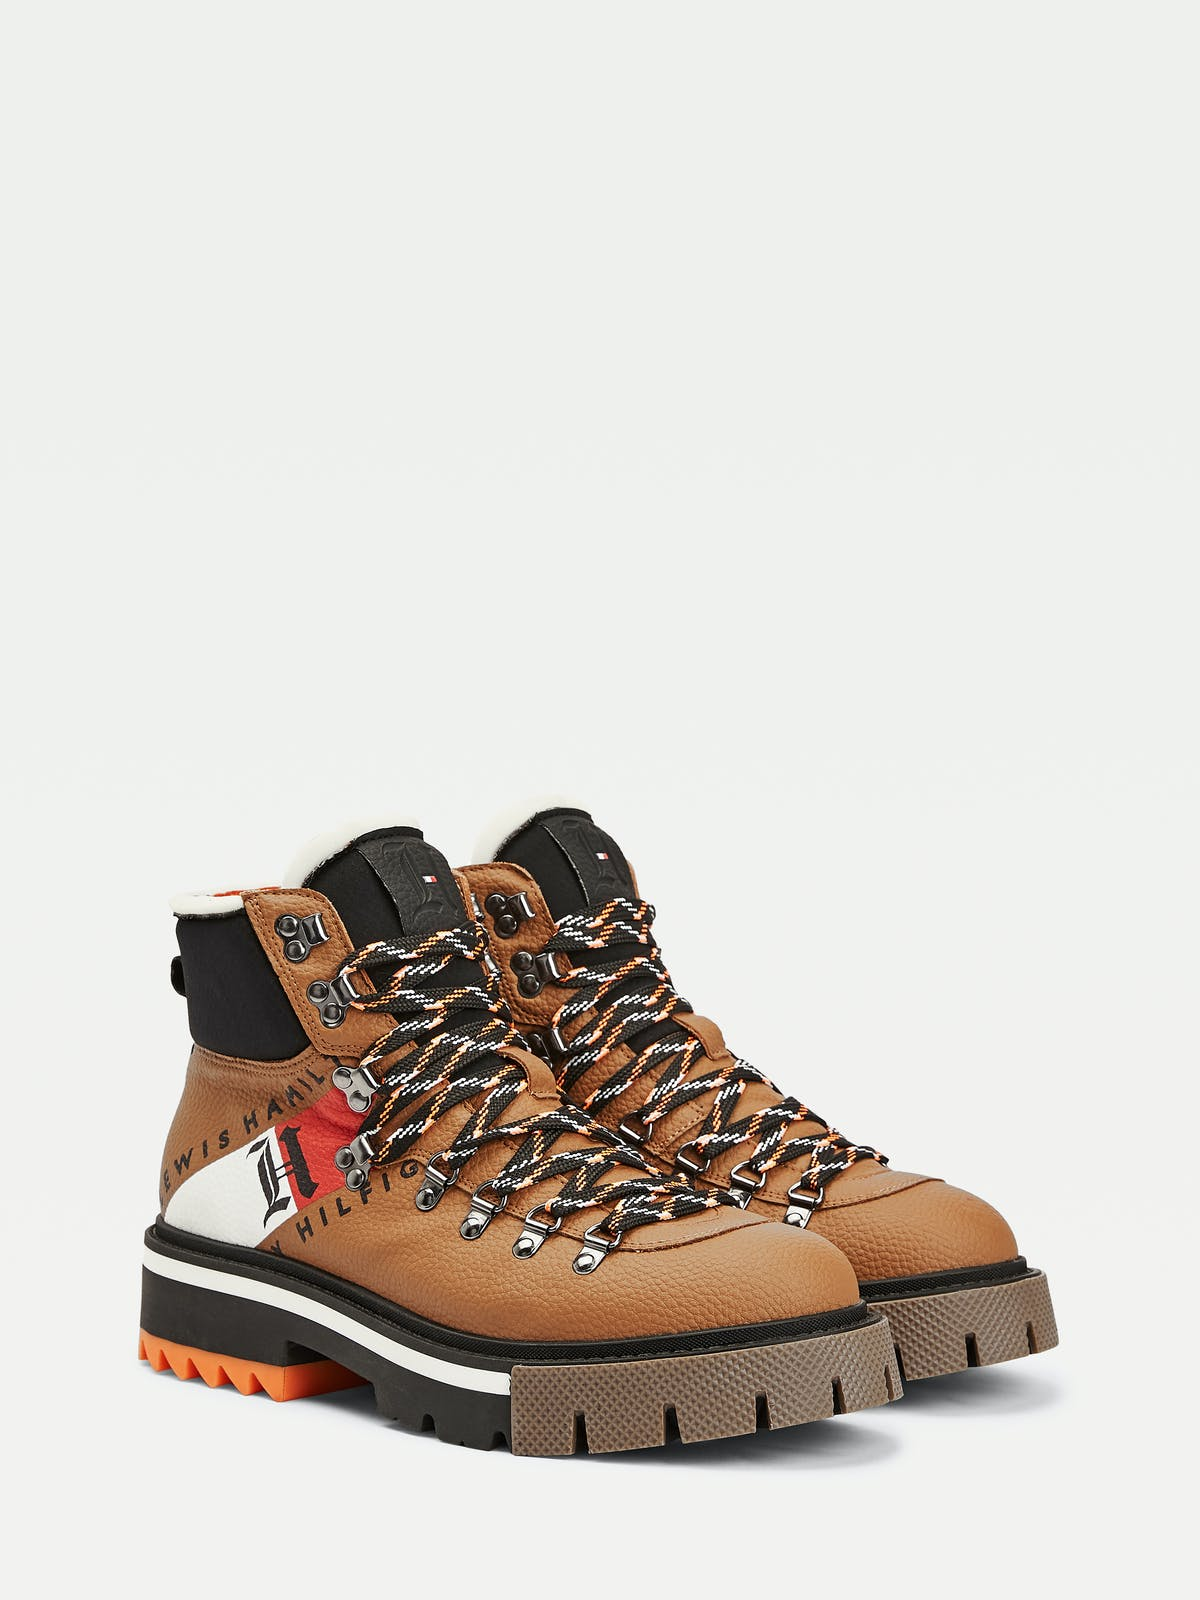 Lewis Hamilton Chunky Outdoor Boots